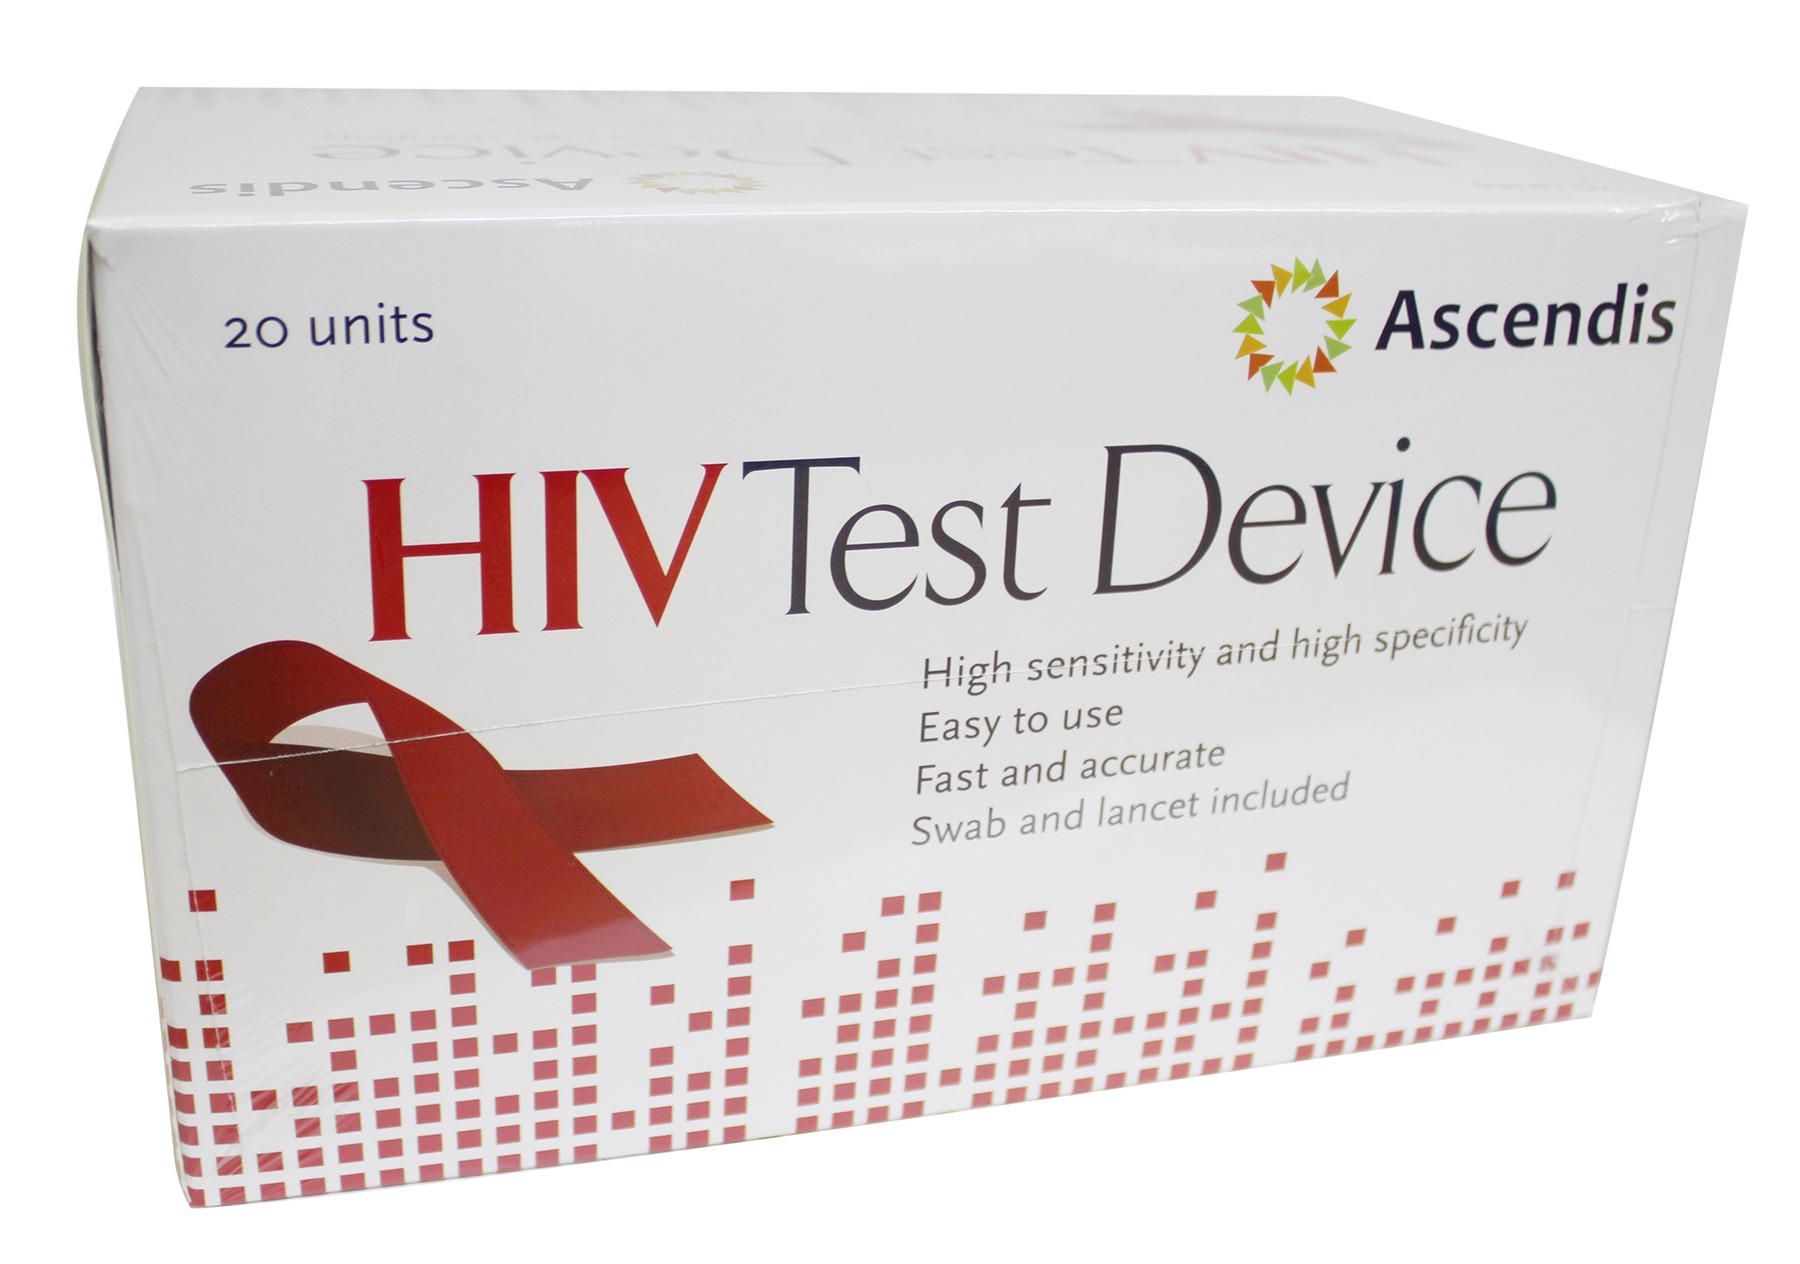 HIV Test Device 20 units